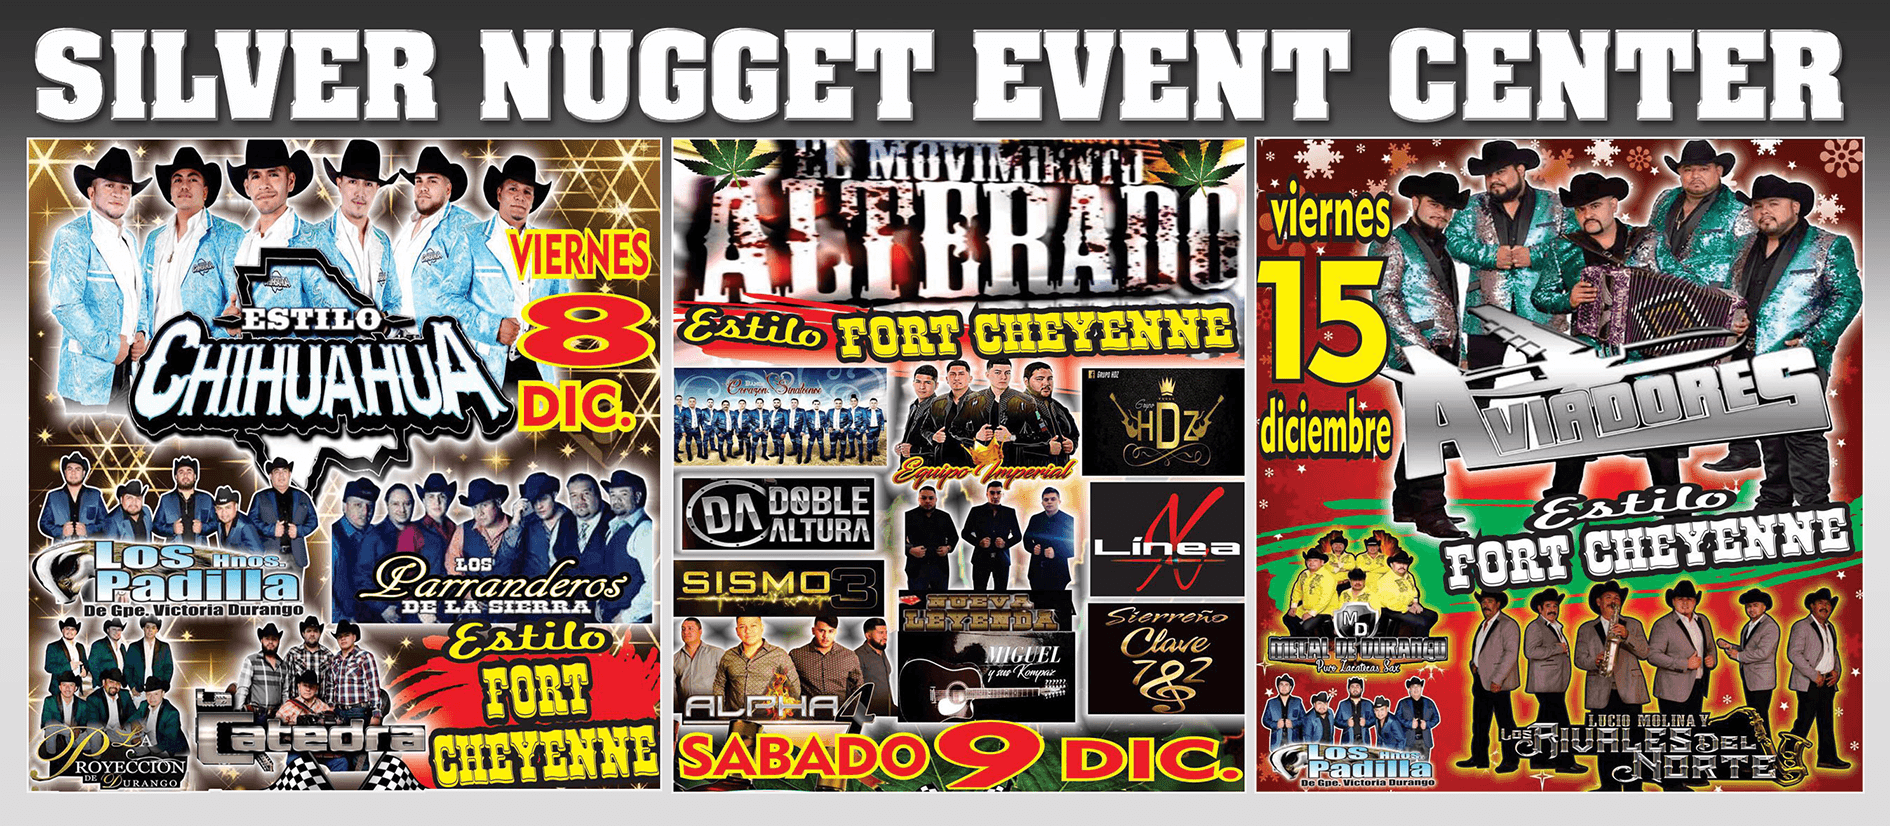 Silver Nugget Event Center - Upcoming Concerts